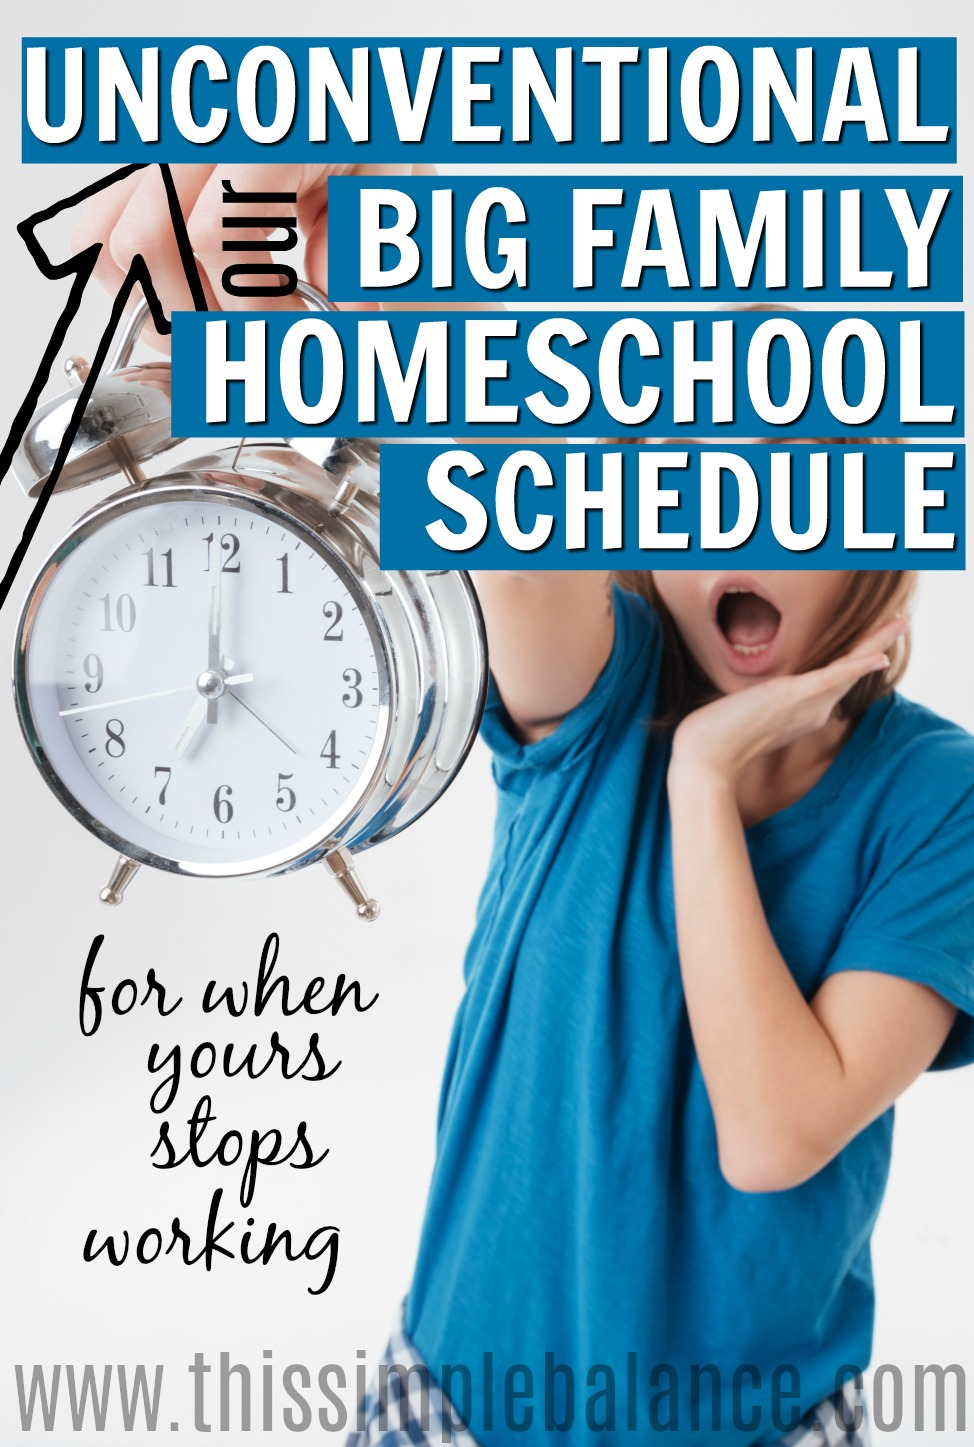 Are you frustrated trying to find a homeschool schedule that works for multiple ages? Let our big family homeschool schedule inspire you to think outside the box. Homeschooling multiple kids with different ages isn't impossible. It just takes creativity and the courage to experiment! #bigfamilyhomeschoolschedule #homeschoolschedulemultiplekids